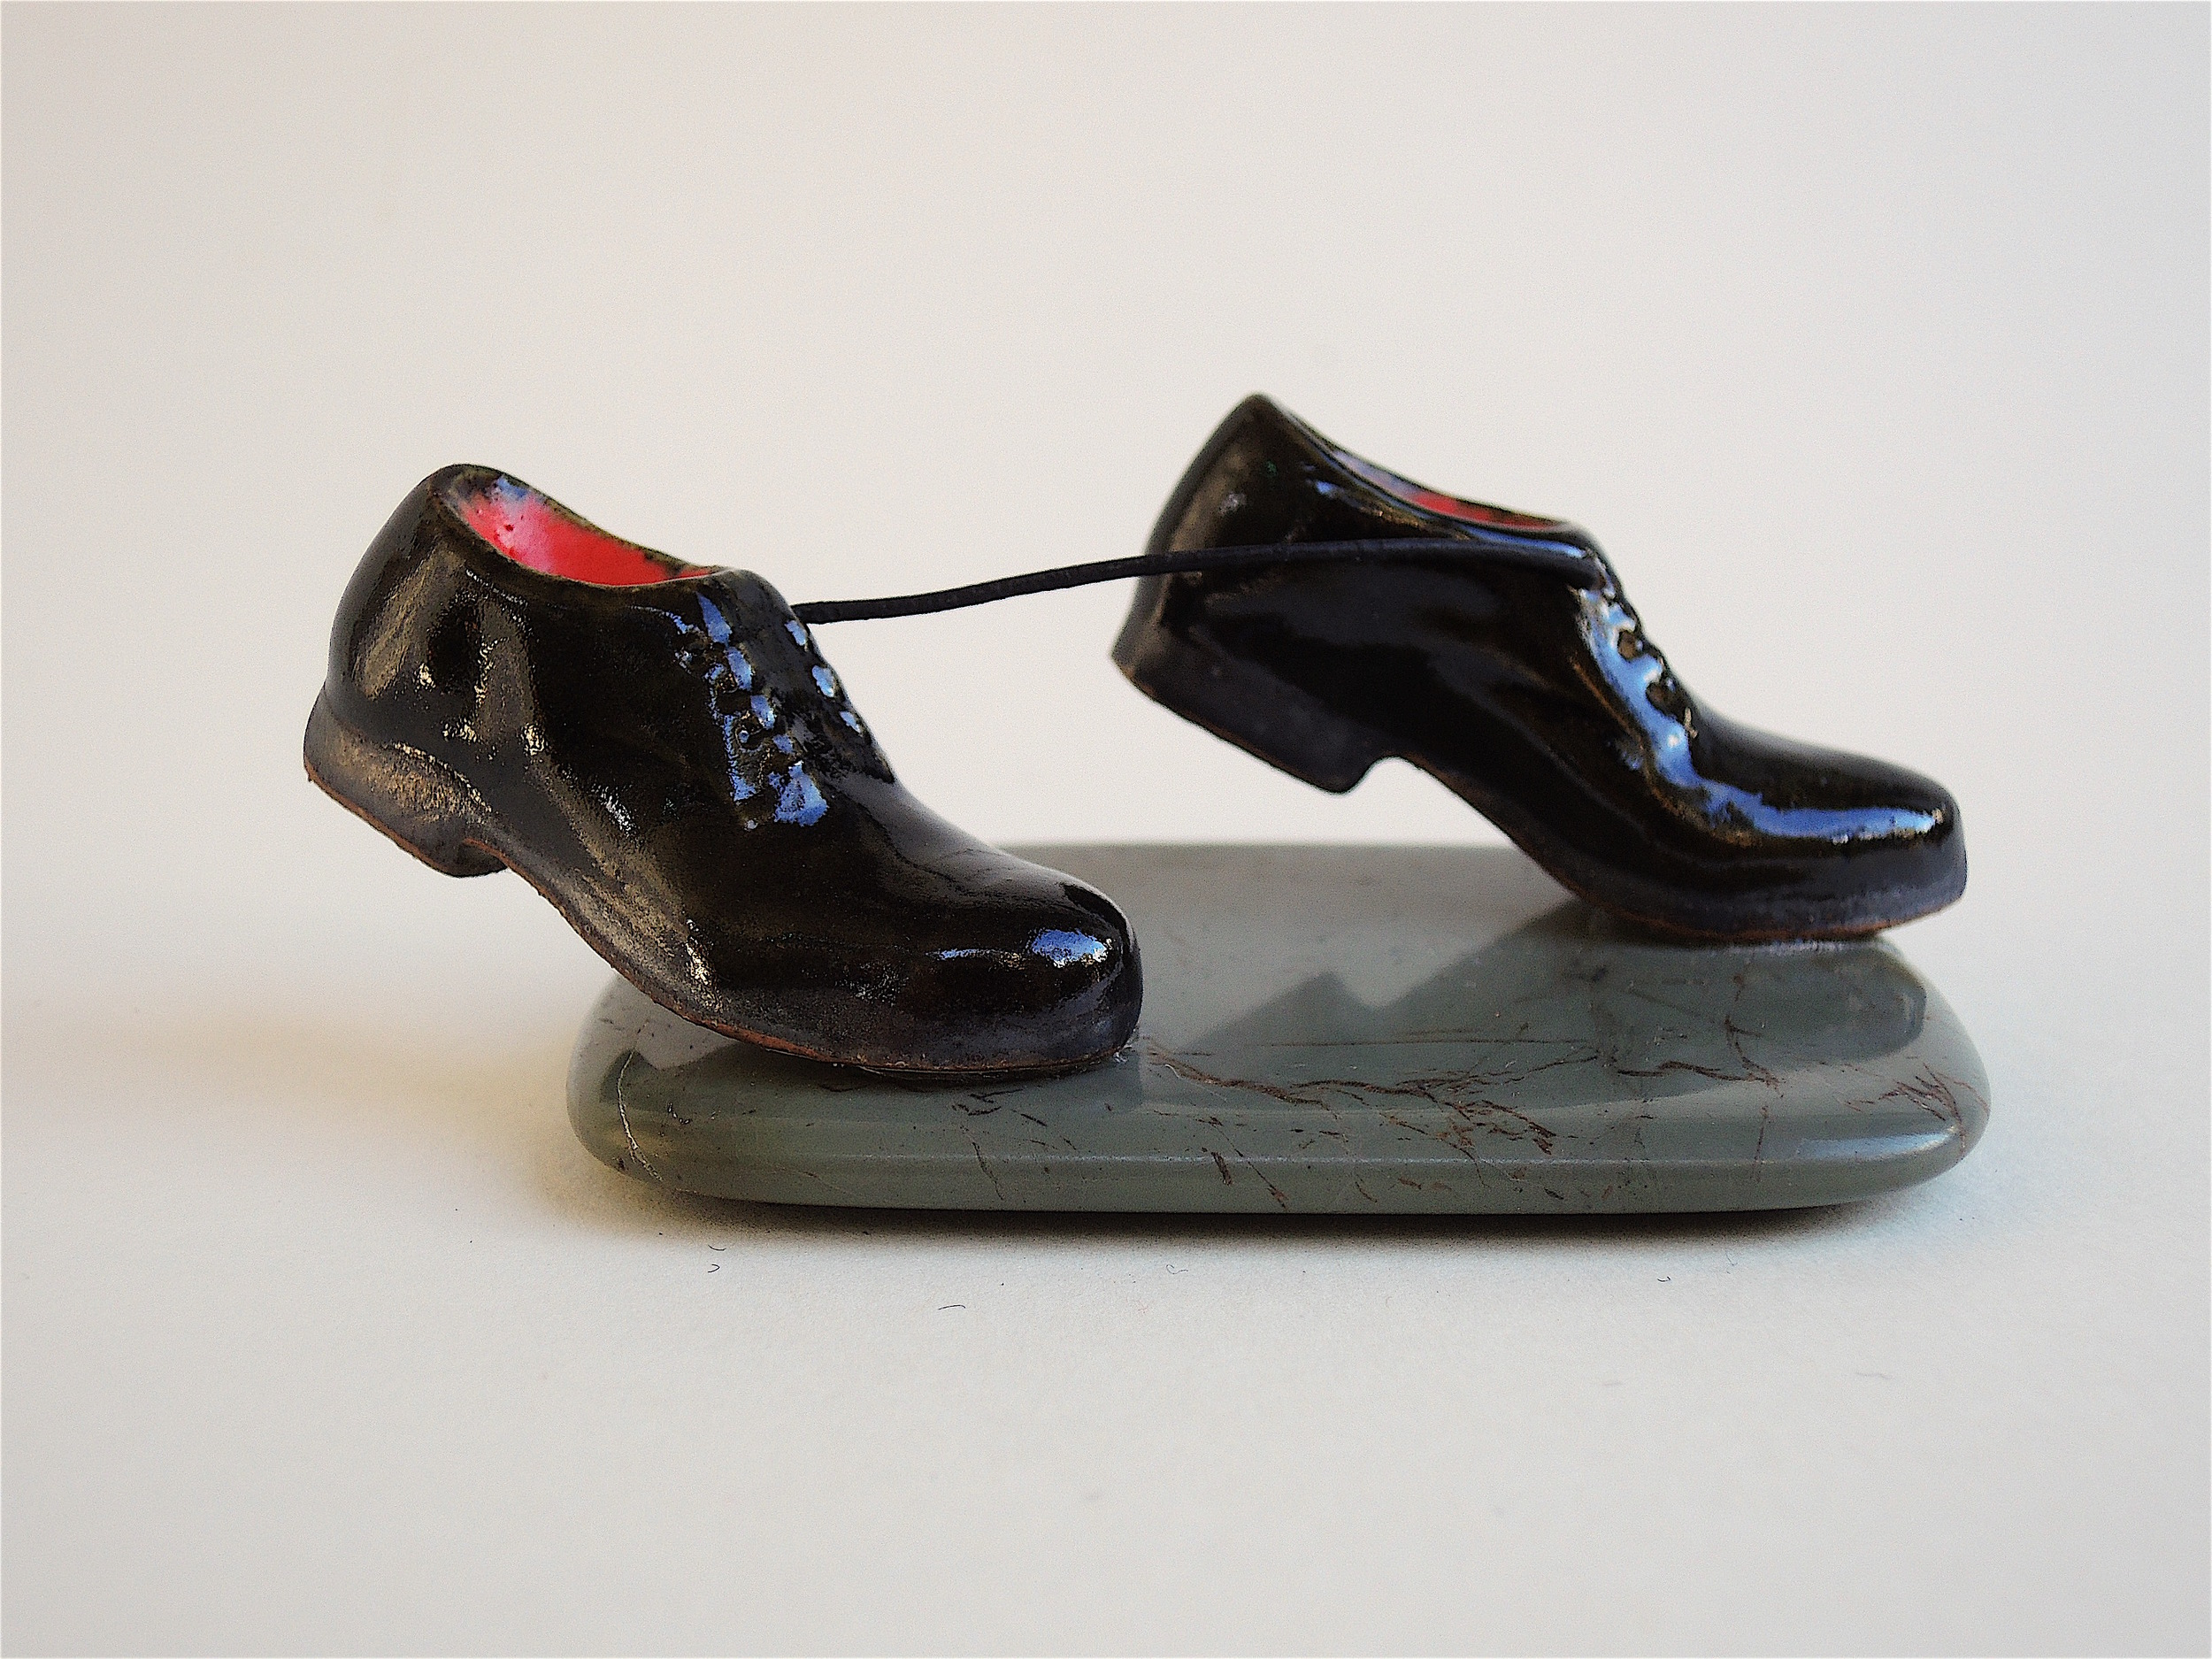 Carmen Lang, Shoe therapy ,Stoneware,1 ½ x 2 x 4 inches,2015